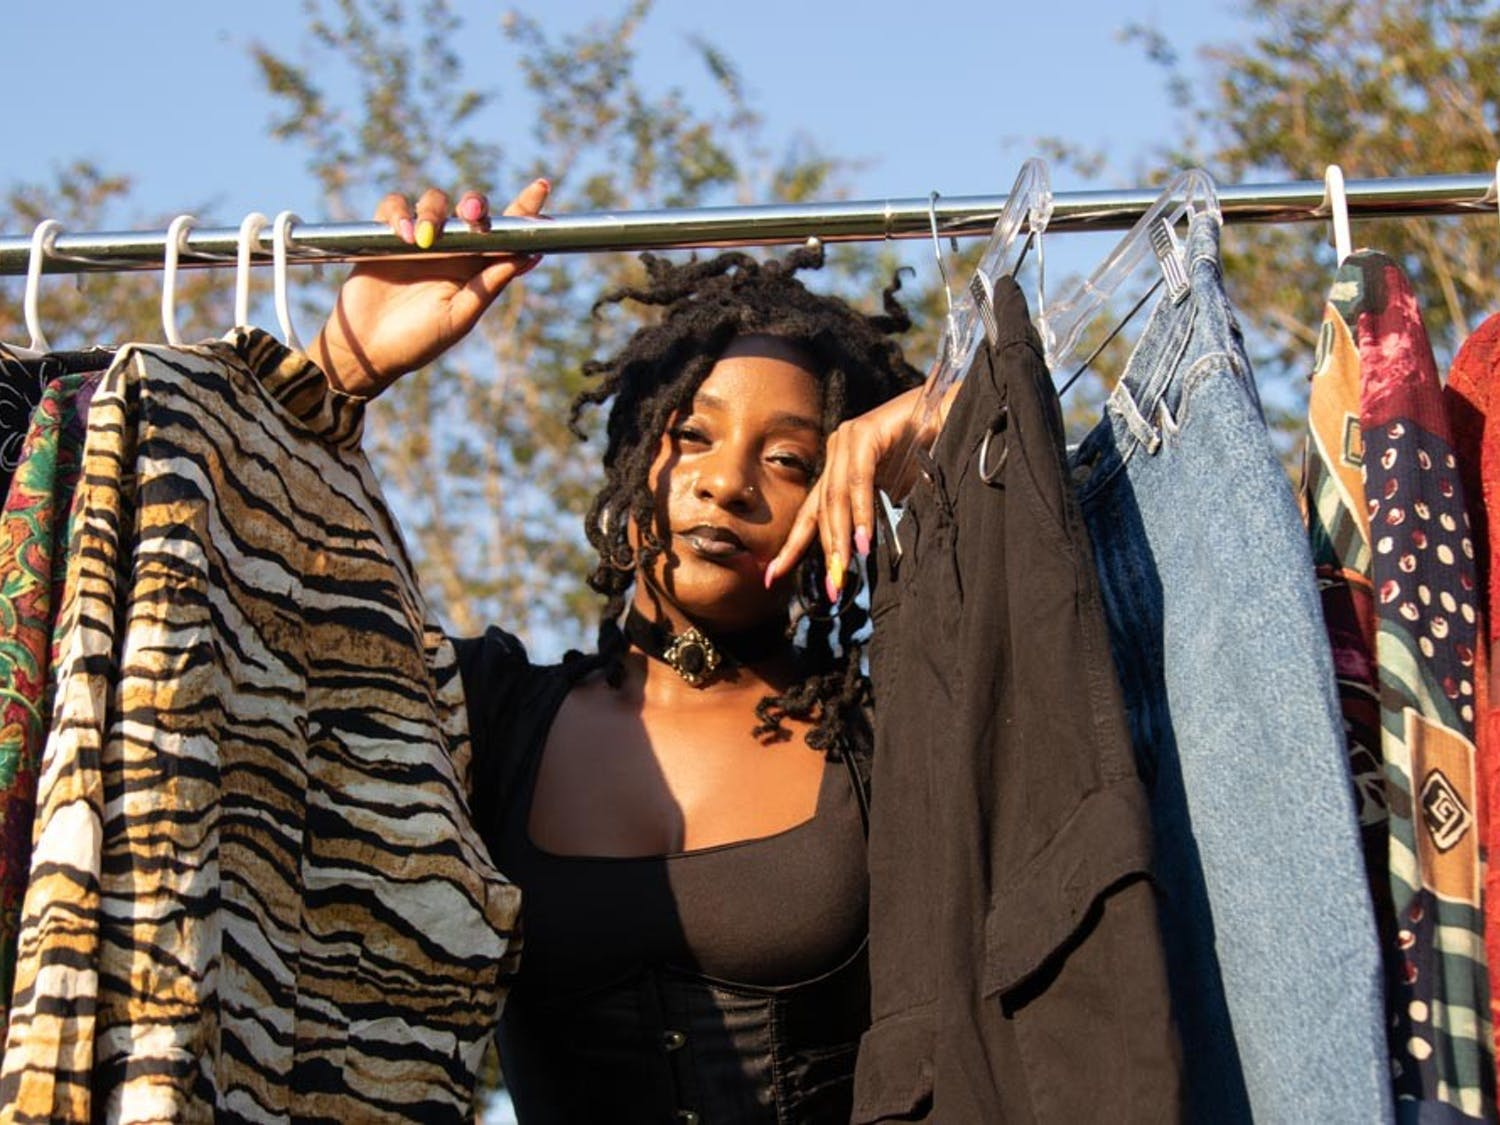 Alexandria Monet poses for a portrait with vintage clothing items she plans to sell for her business on Sept. 29. Monet owns She Thrifty Apparel where she sells curated vintage clothing apparel and aims to divert fashion waste.